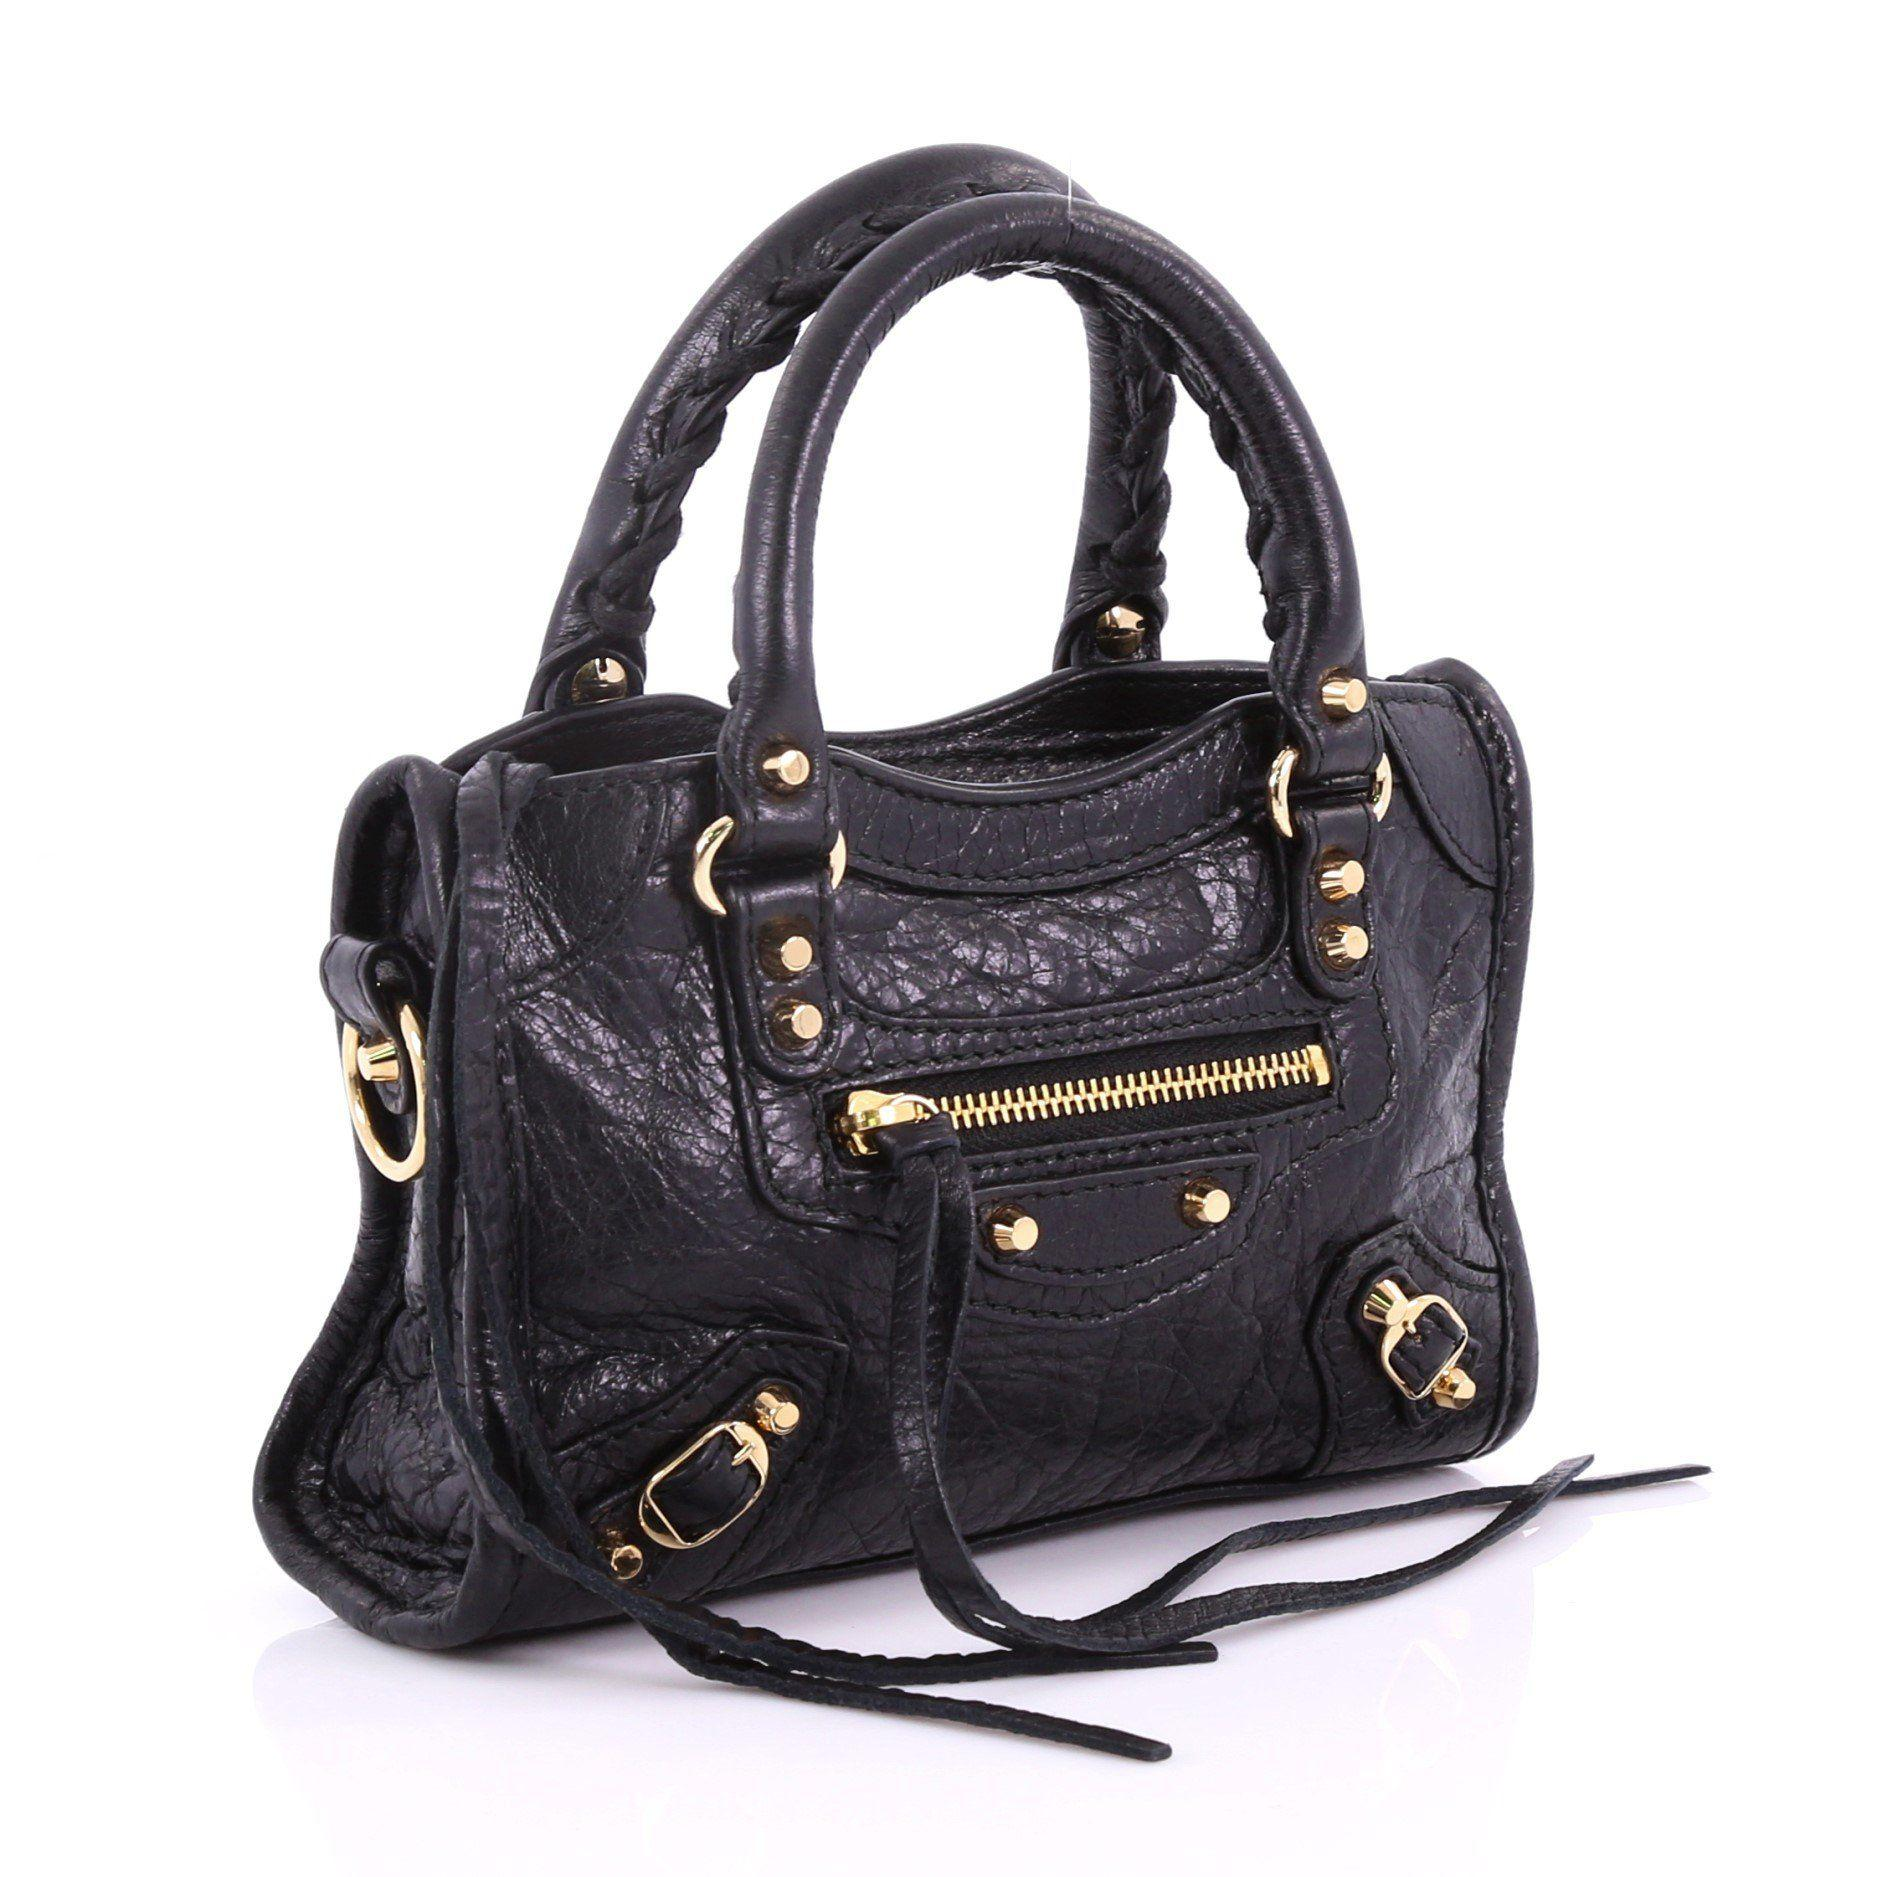 Balenciaga - Black Pre Owned City Classic Studs Handbag Leather Nano -  Lyst. View fullscreen 82cf7b978f8a4